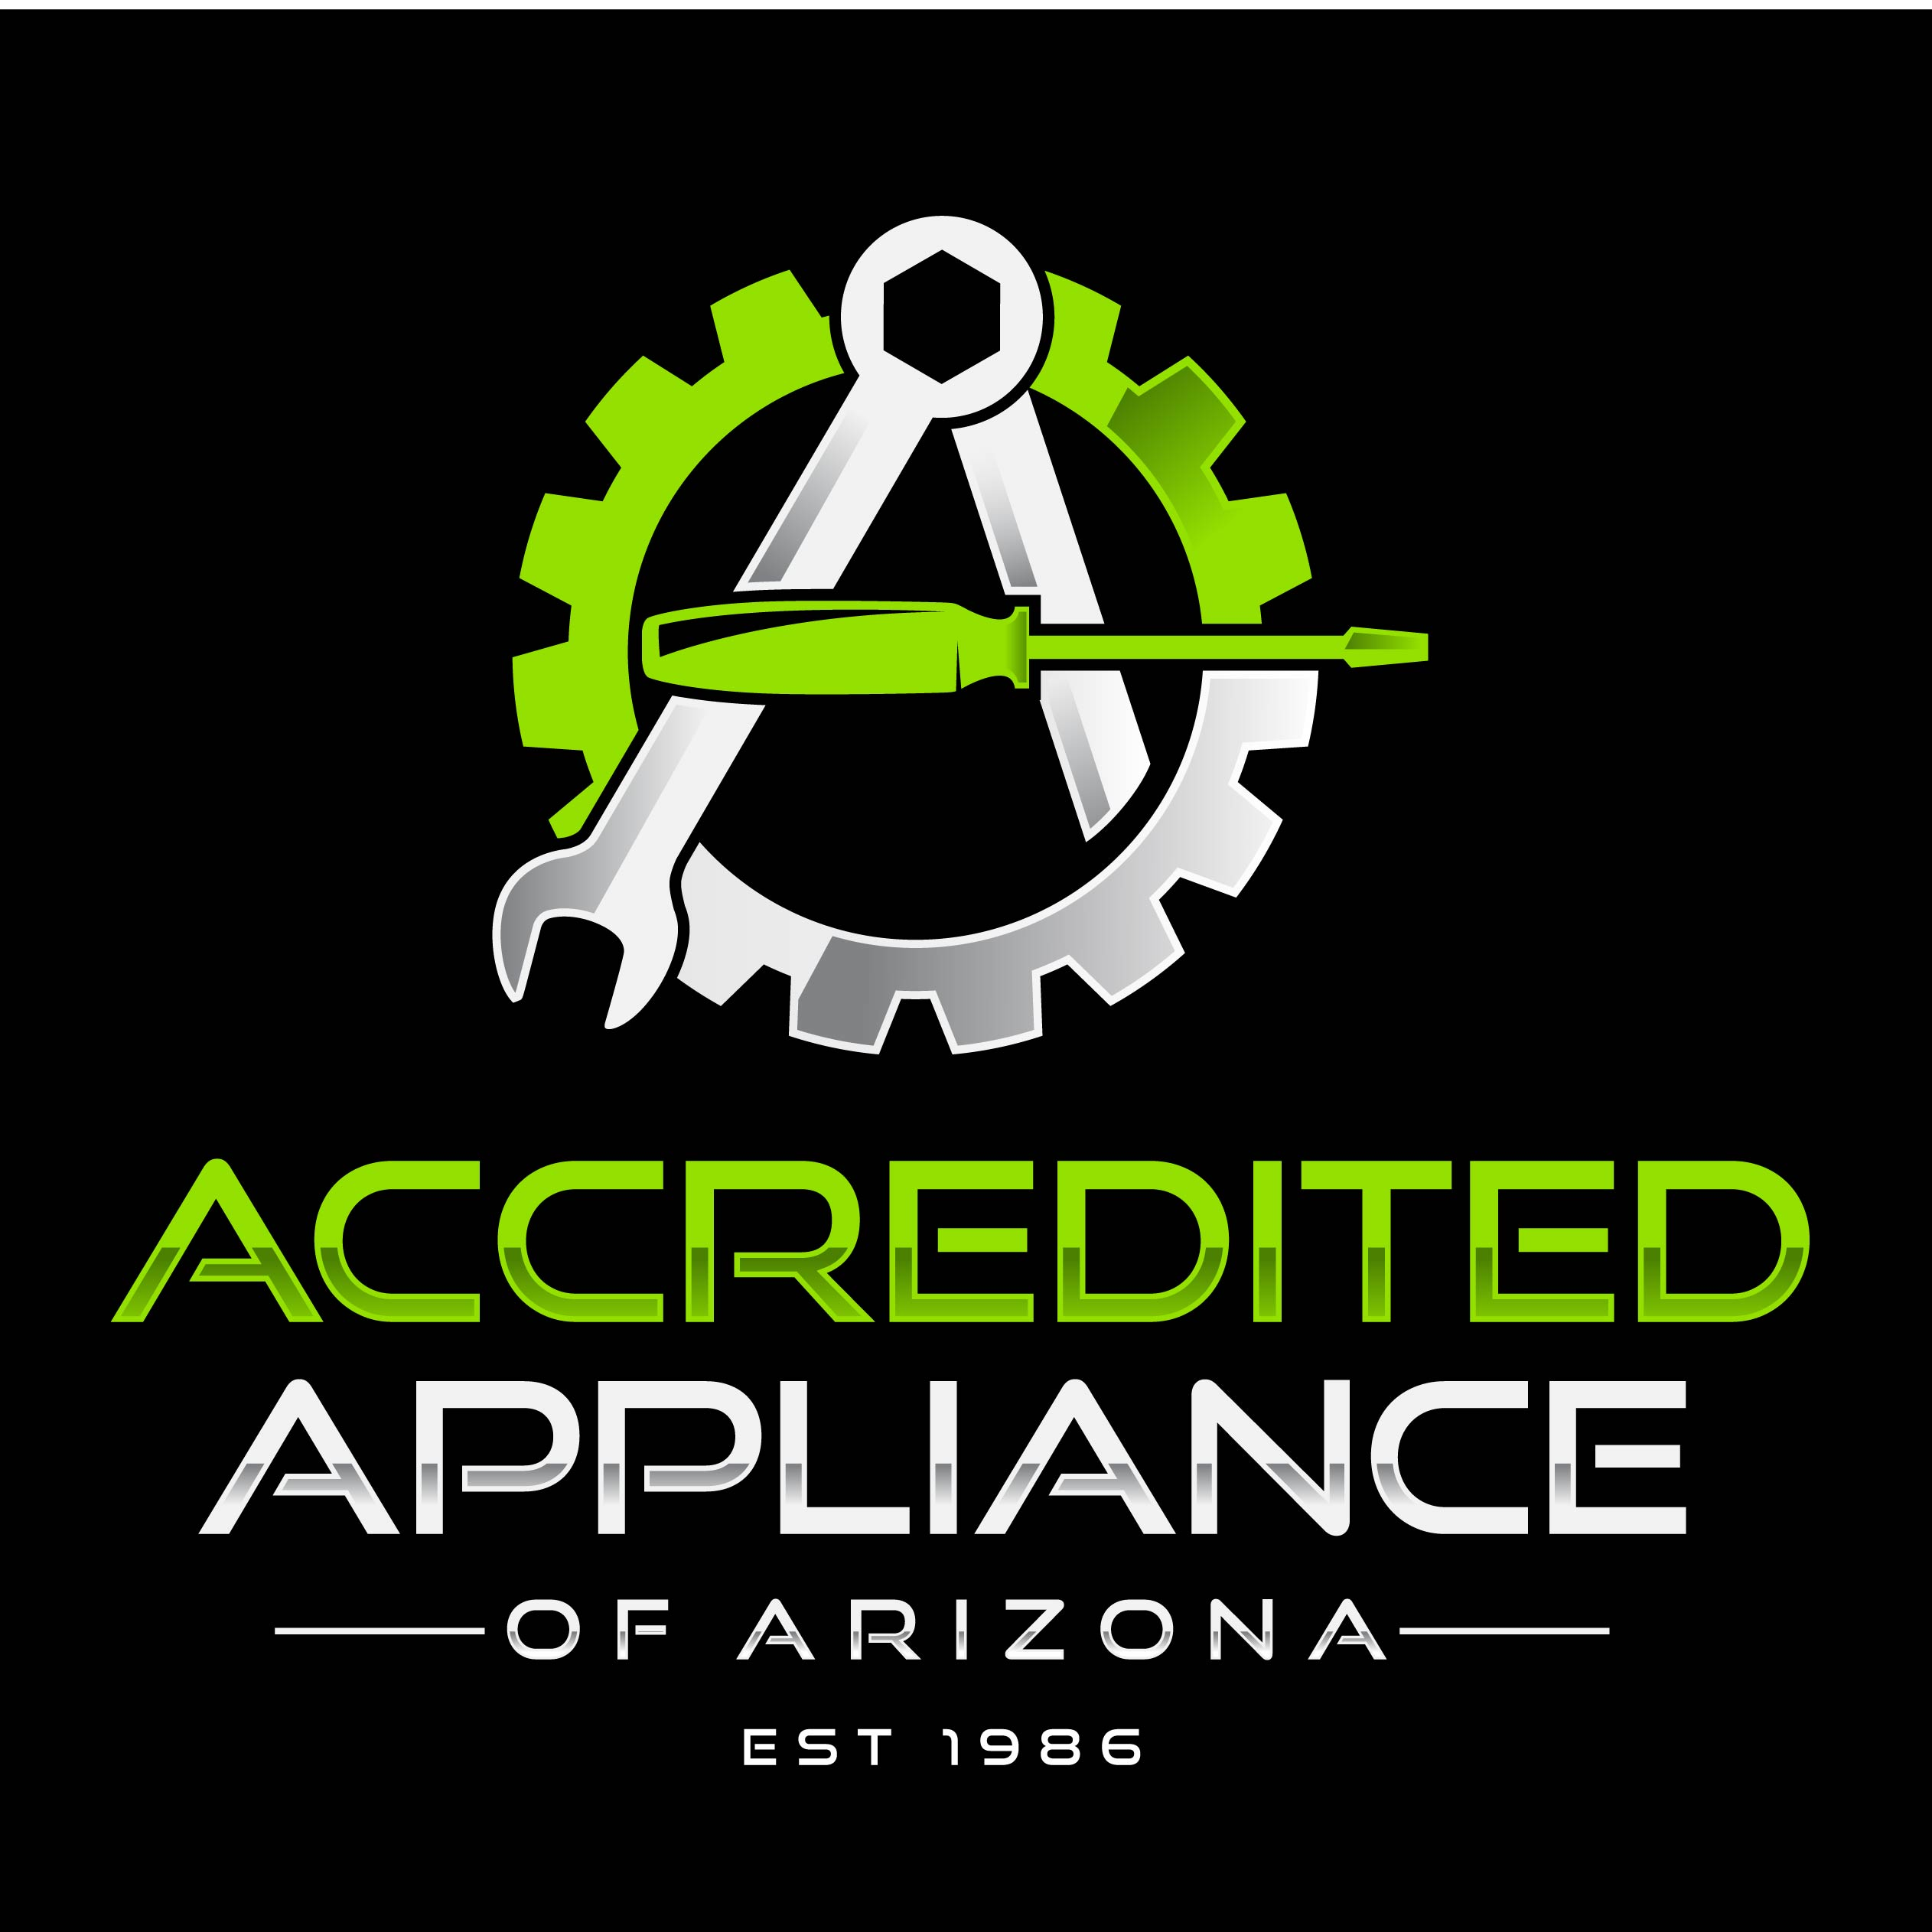 Accredited Appliance Of Arizona LLC. Logo